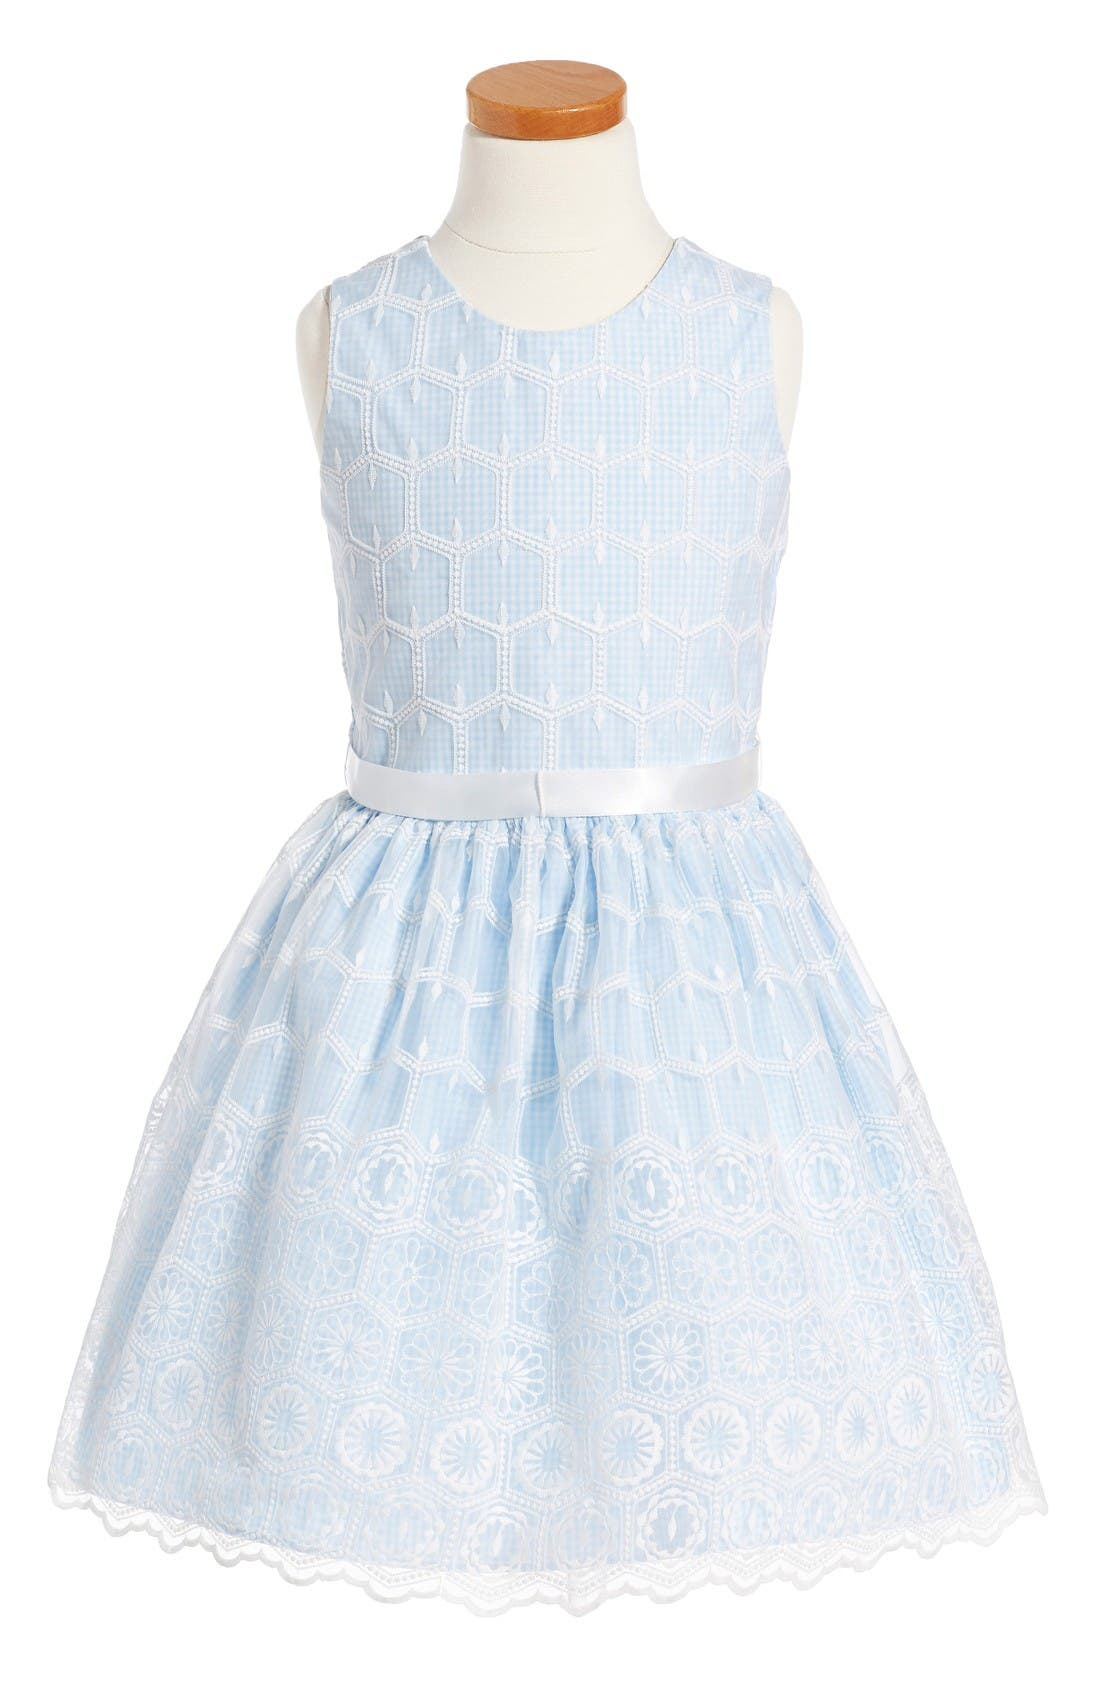 PIPPA & JULIE Gingham Embroidered Dress